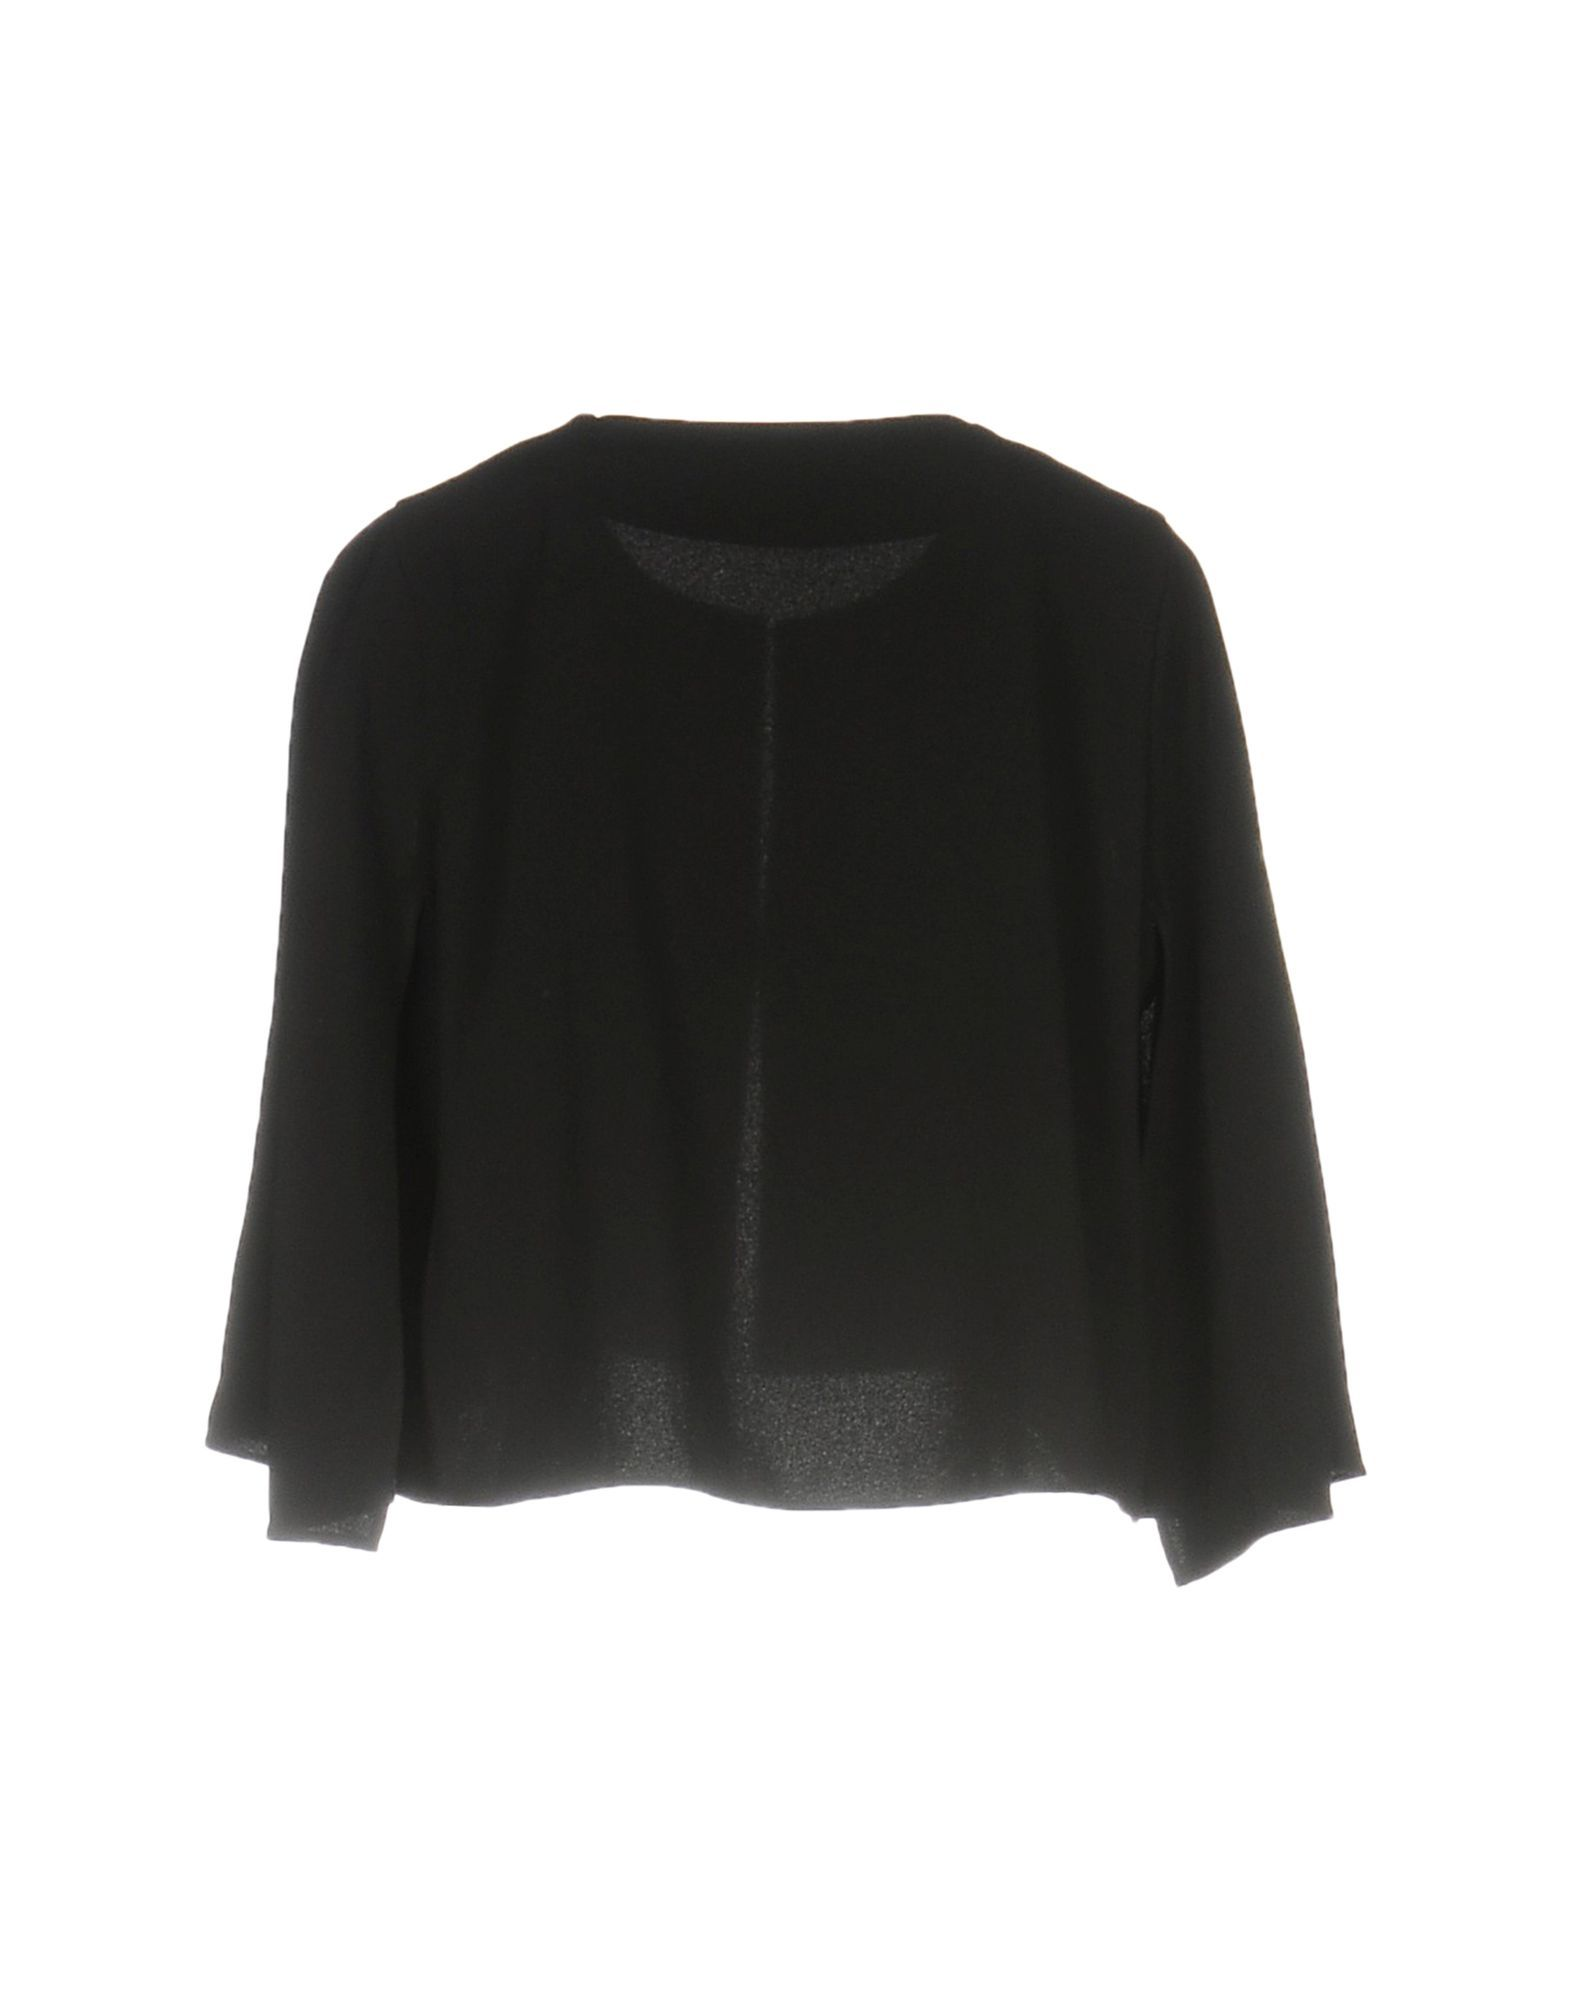 Suits And Jackets Emma Brendon Black Women's Polyester